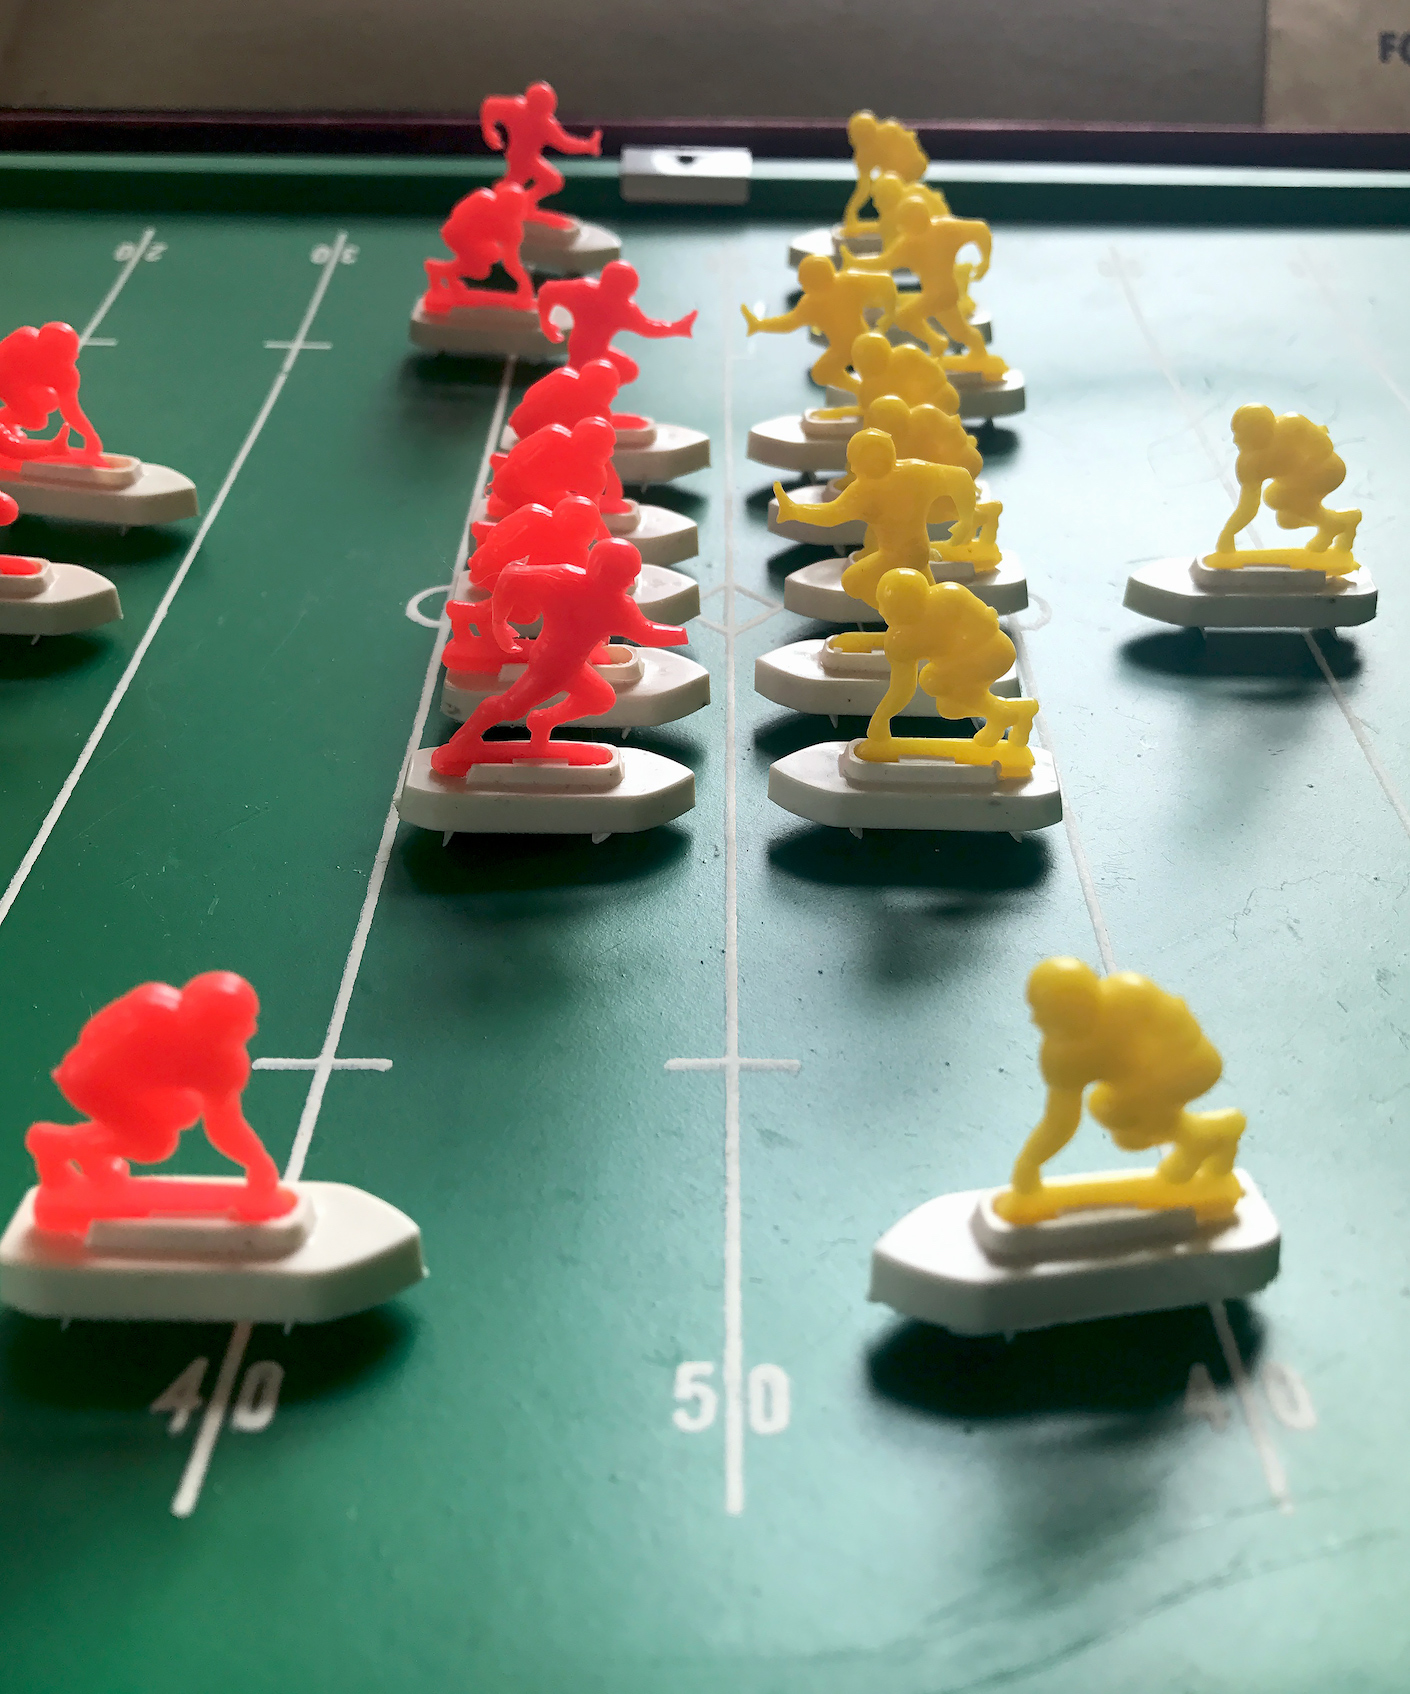 "<img alt=""Players of the Pressman Vibro-Power Football game"">"